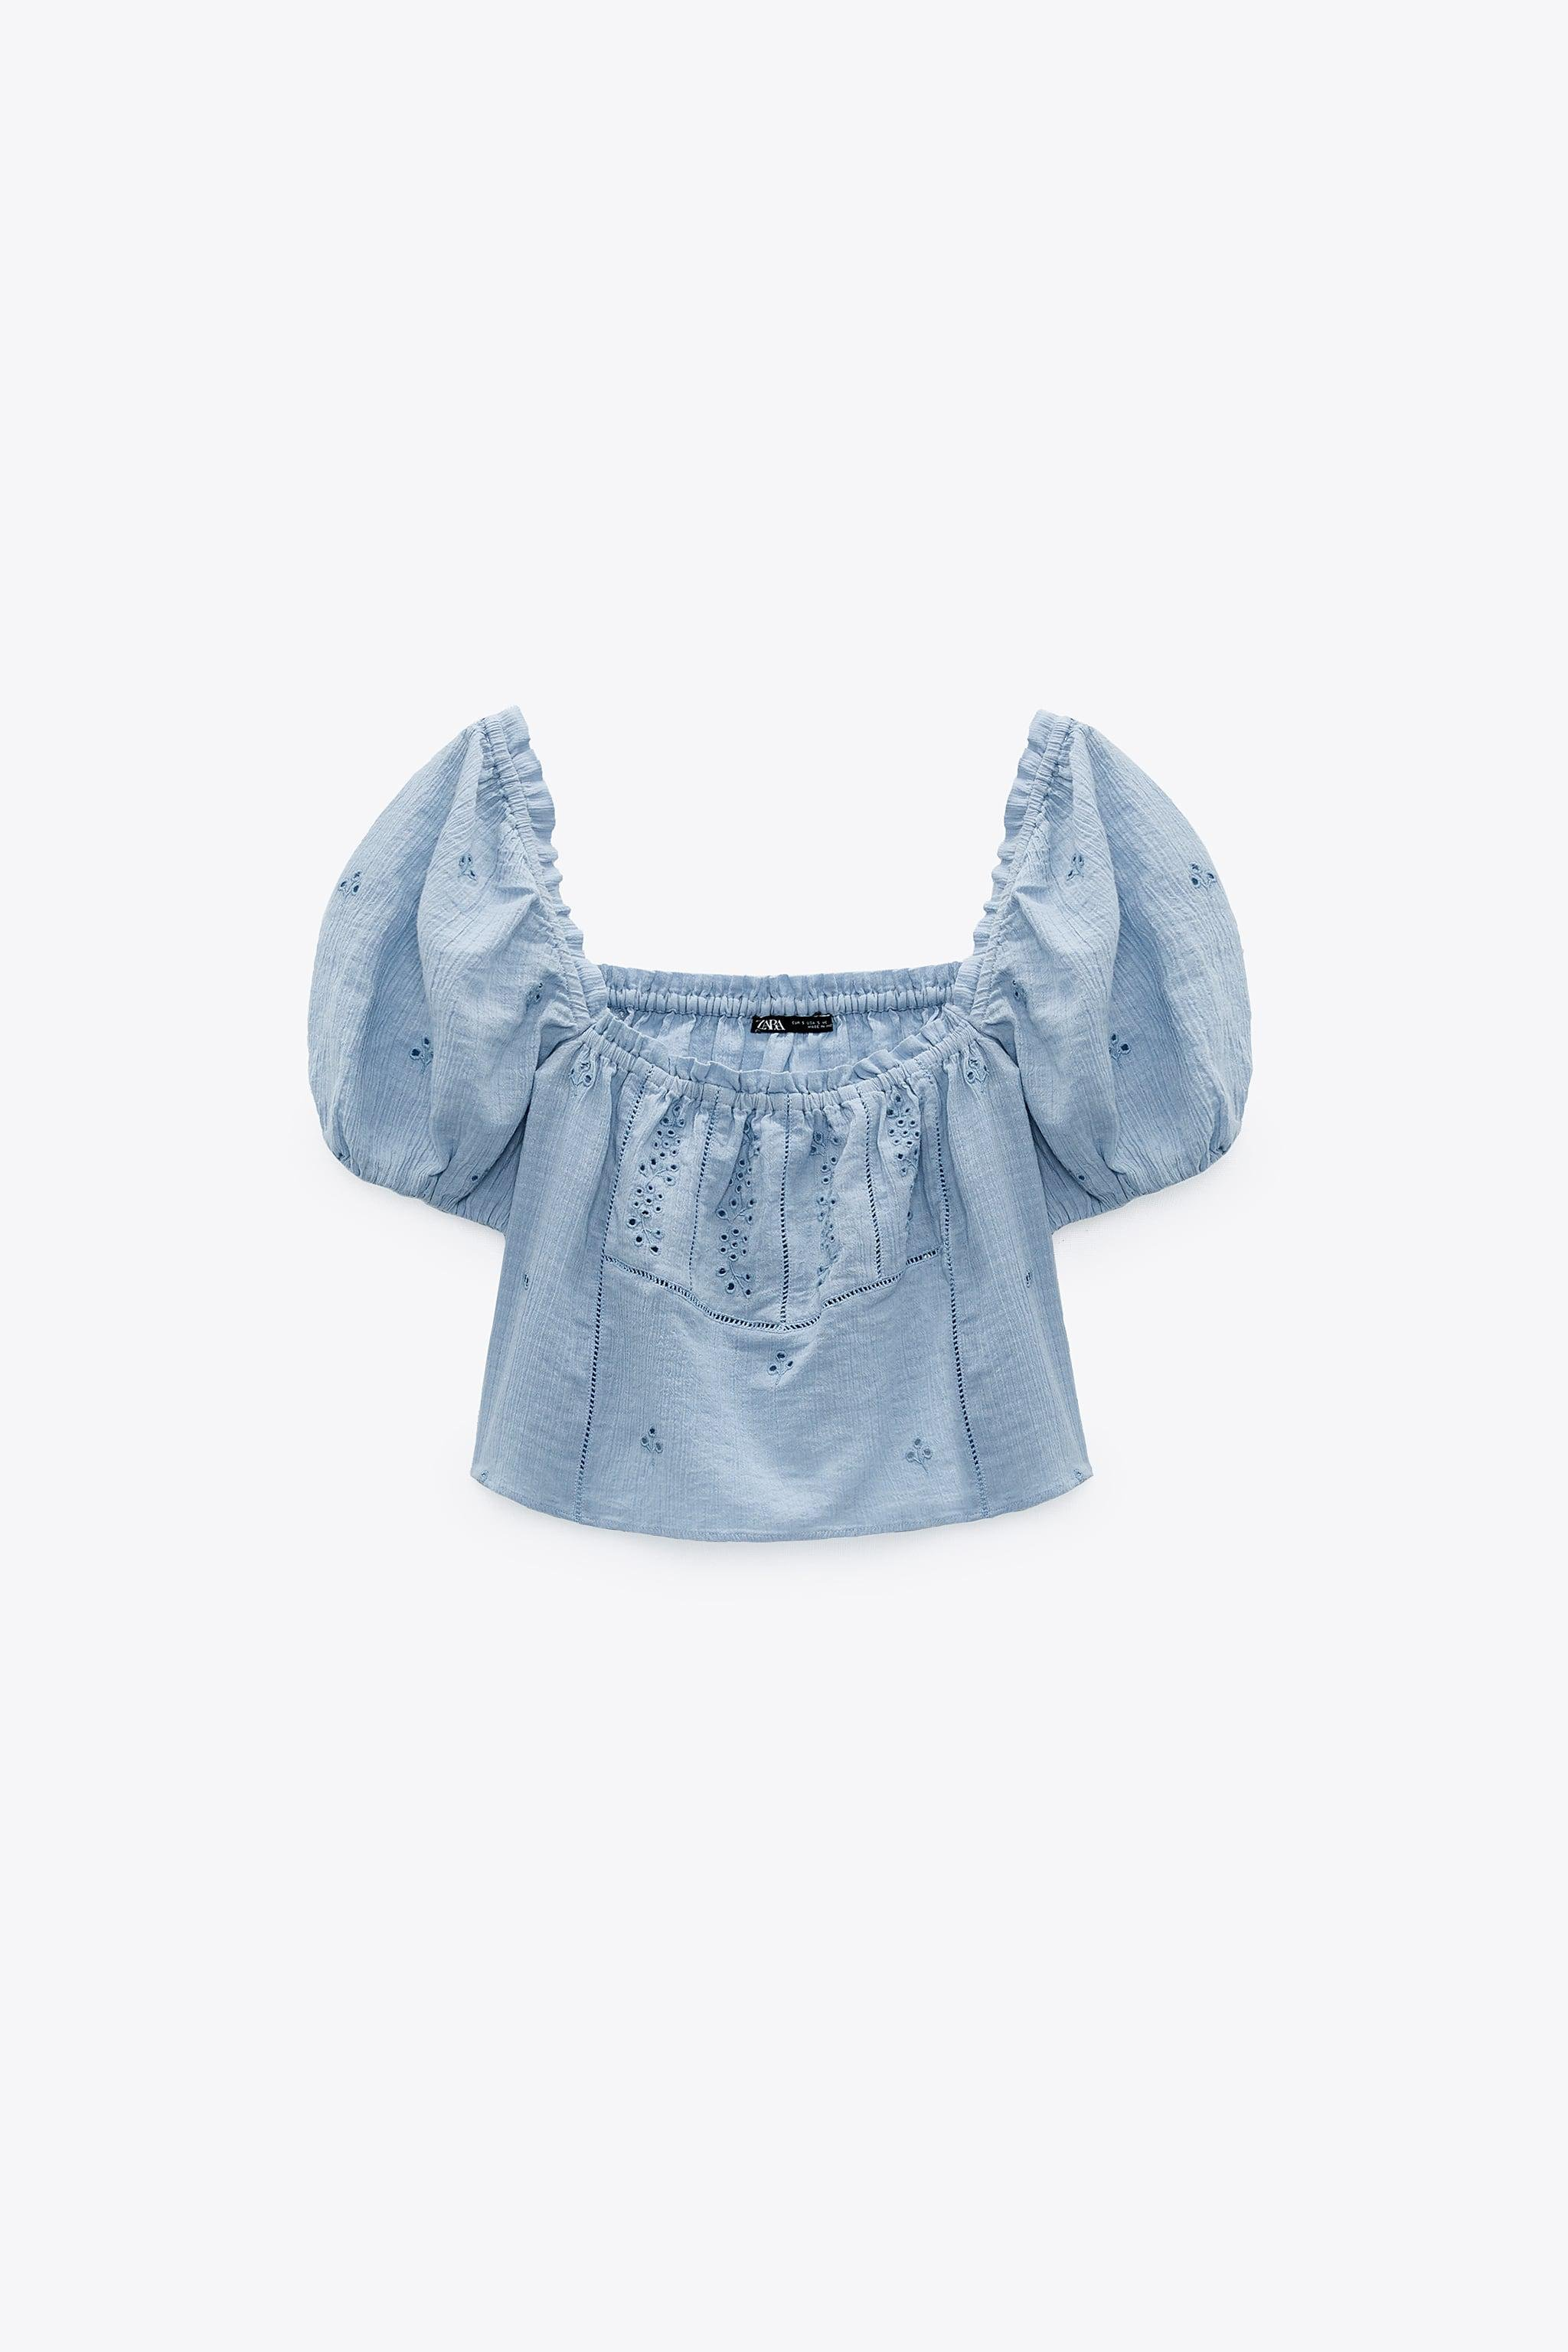 OPENWORK EMBROIDERED TOP 6